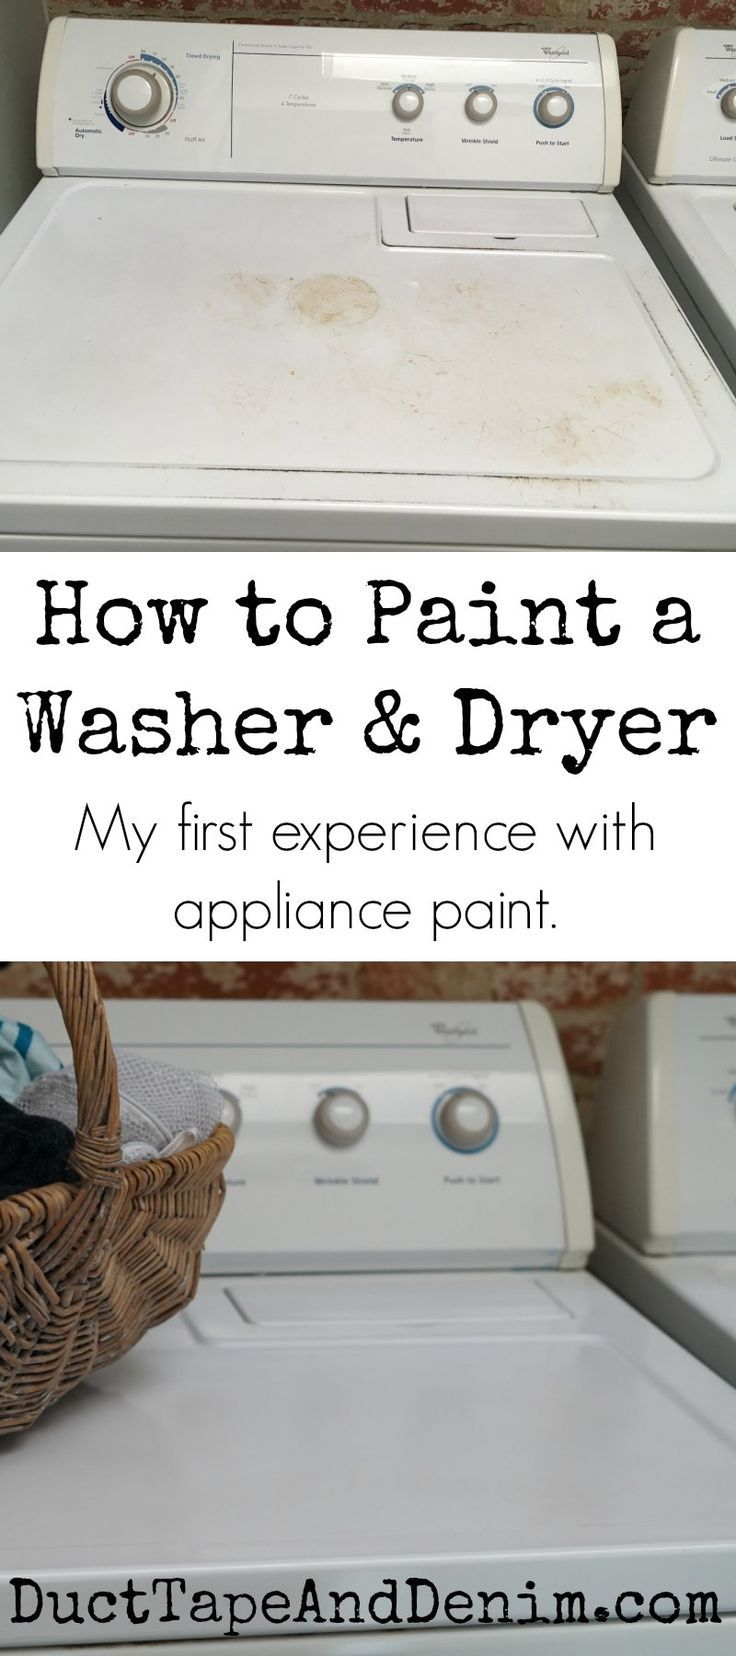 How to paint a washer and dryer. My first experience with appliance paint. Washi...